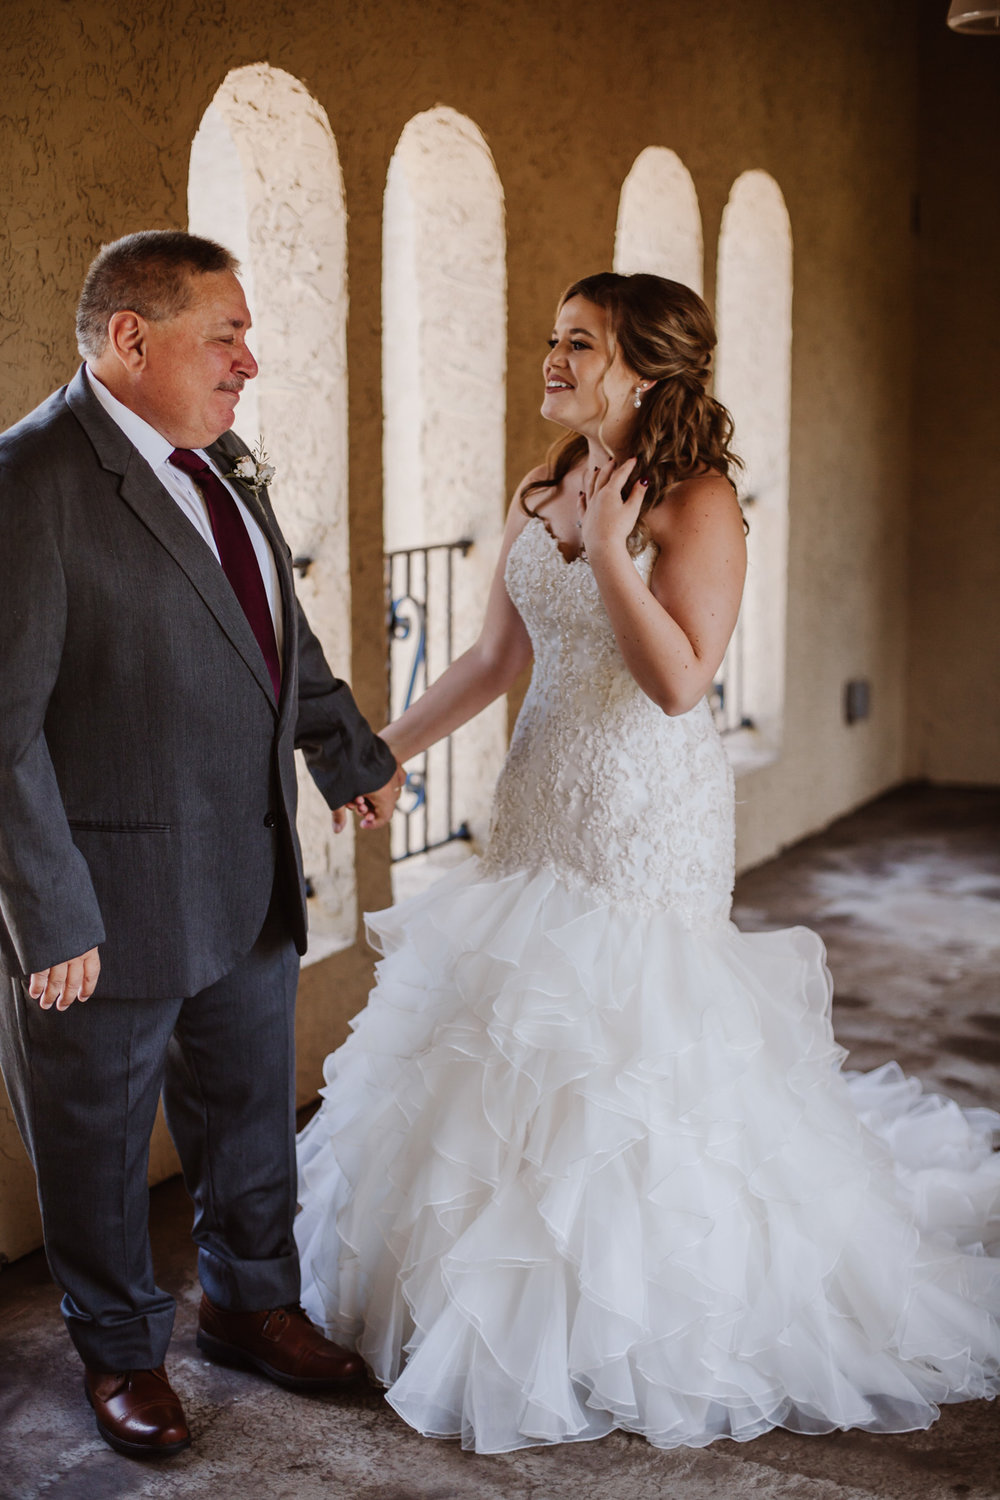 Bella Collina wedding | father and bride/daughter first look | Kayli LaFon Photography, Greensboro Winston-Salem NC Photographer